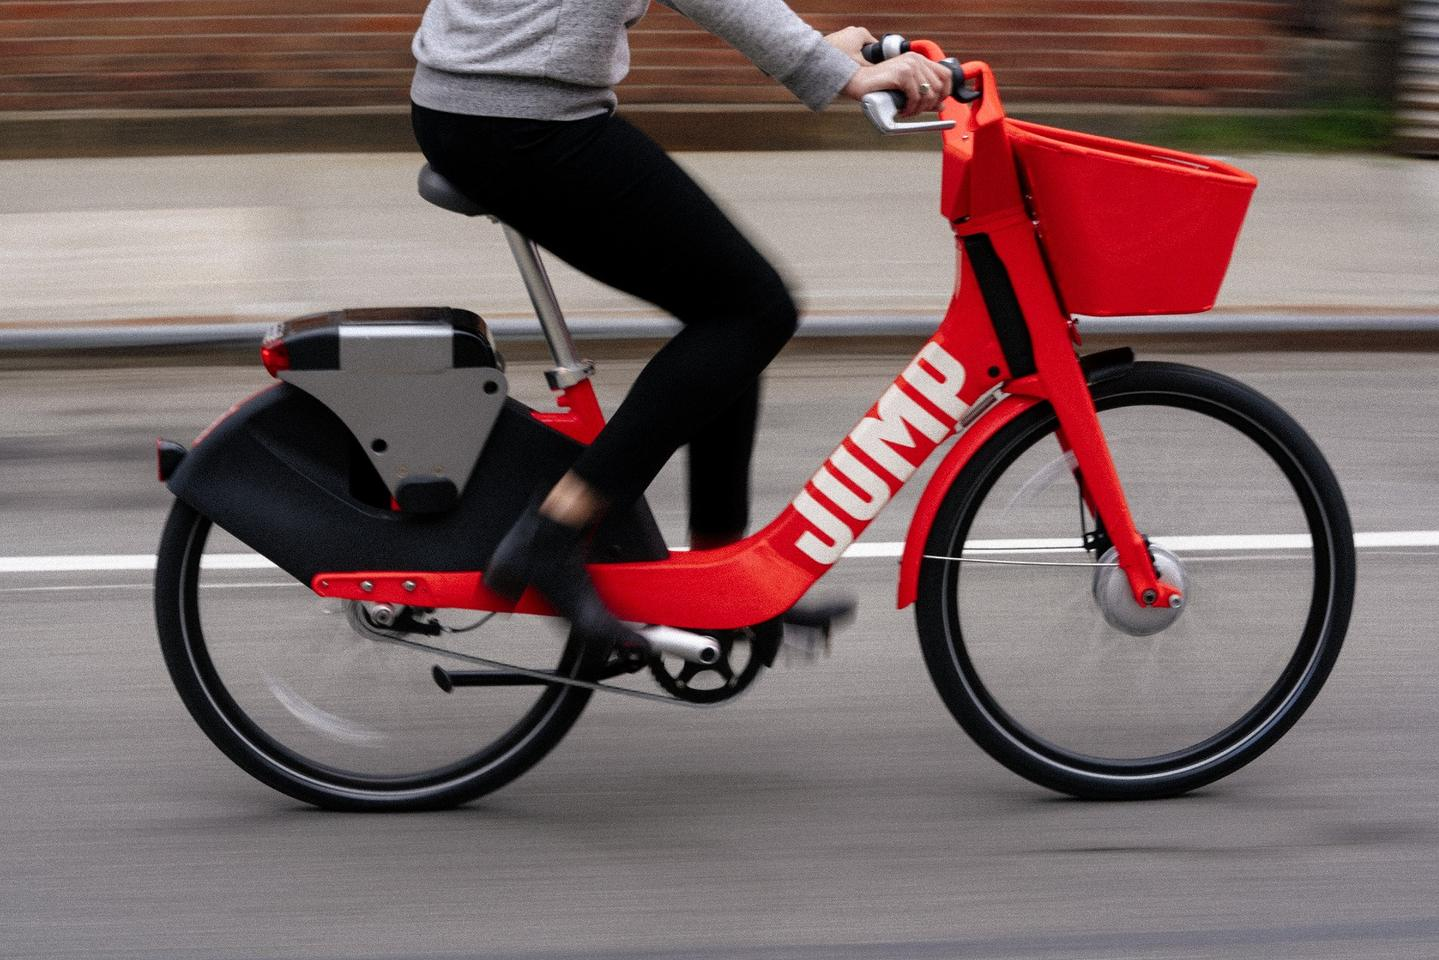 Based in San Francisco, startup Jump already has its bikes on the city's streets, along with those of Washington DC